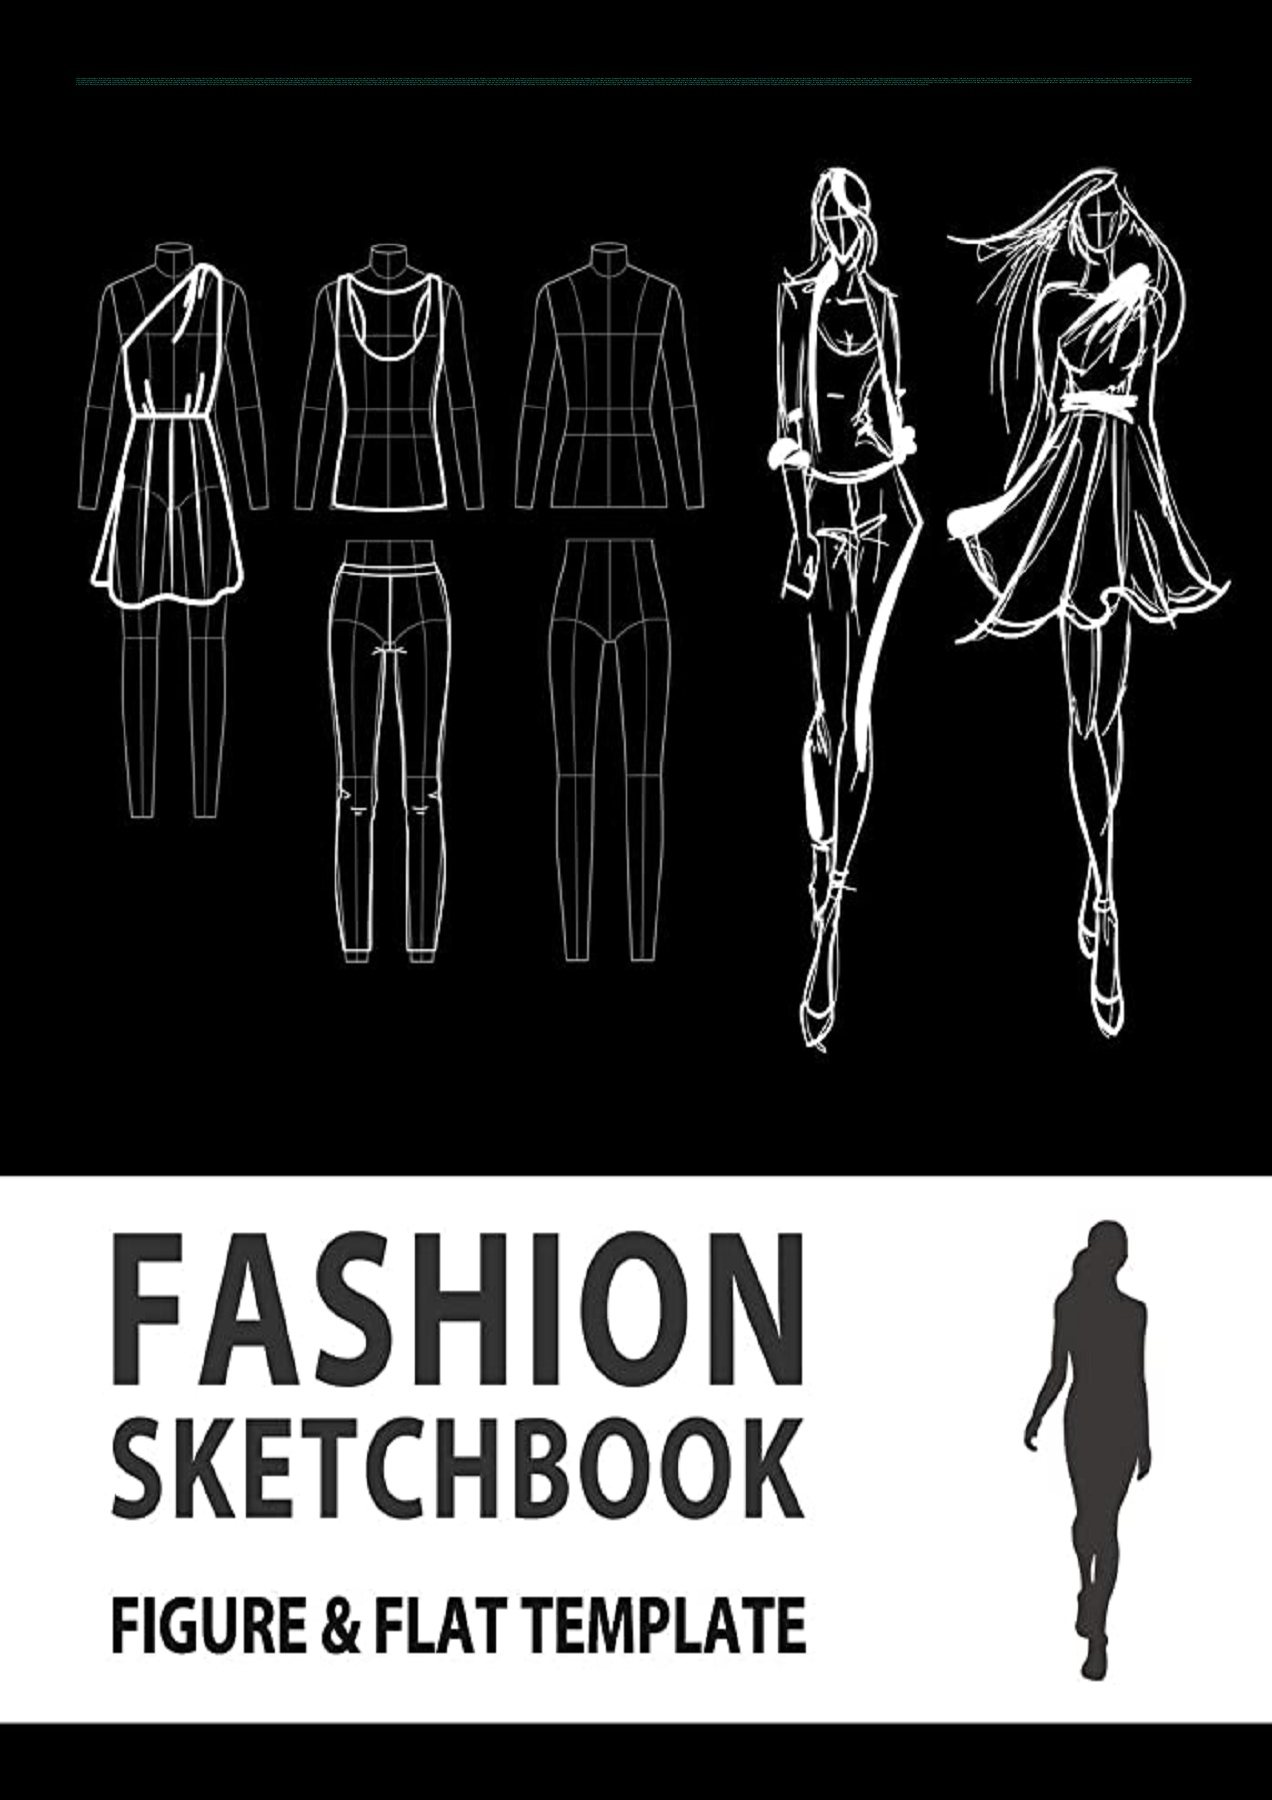 Pdf Download Fashion Sketchbook Figure Flat Template Easily Sketching And Building Your Fashion Design Portfolio With Large Female Croquis Drawing Your Fashion Flats With Flat Template Fashion Flats Drawing Full